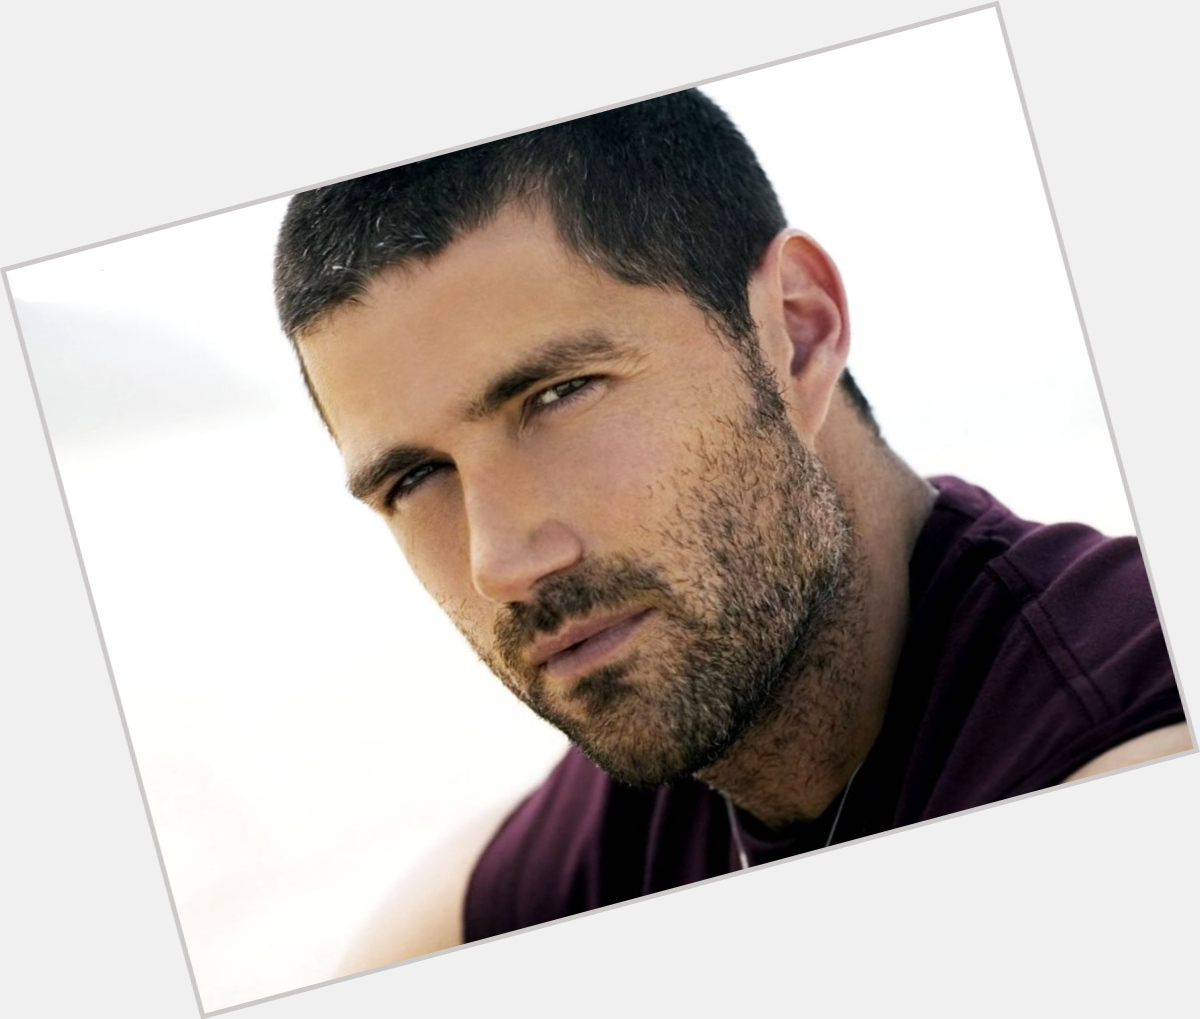 matthew fox movies 0.jpg